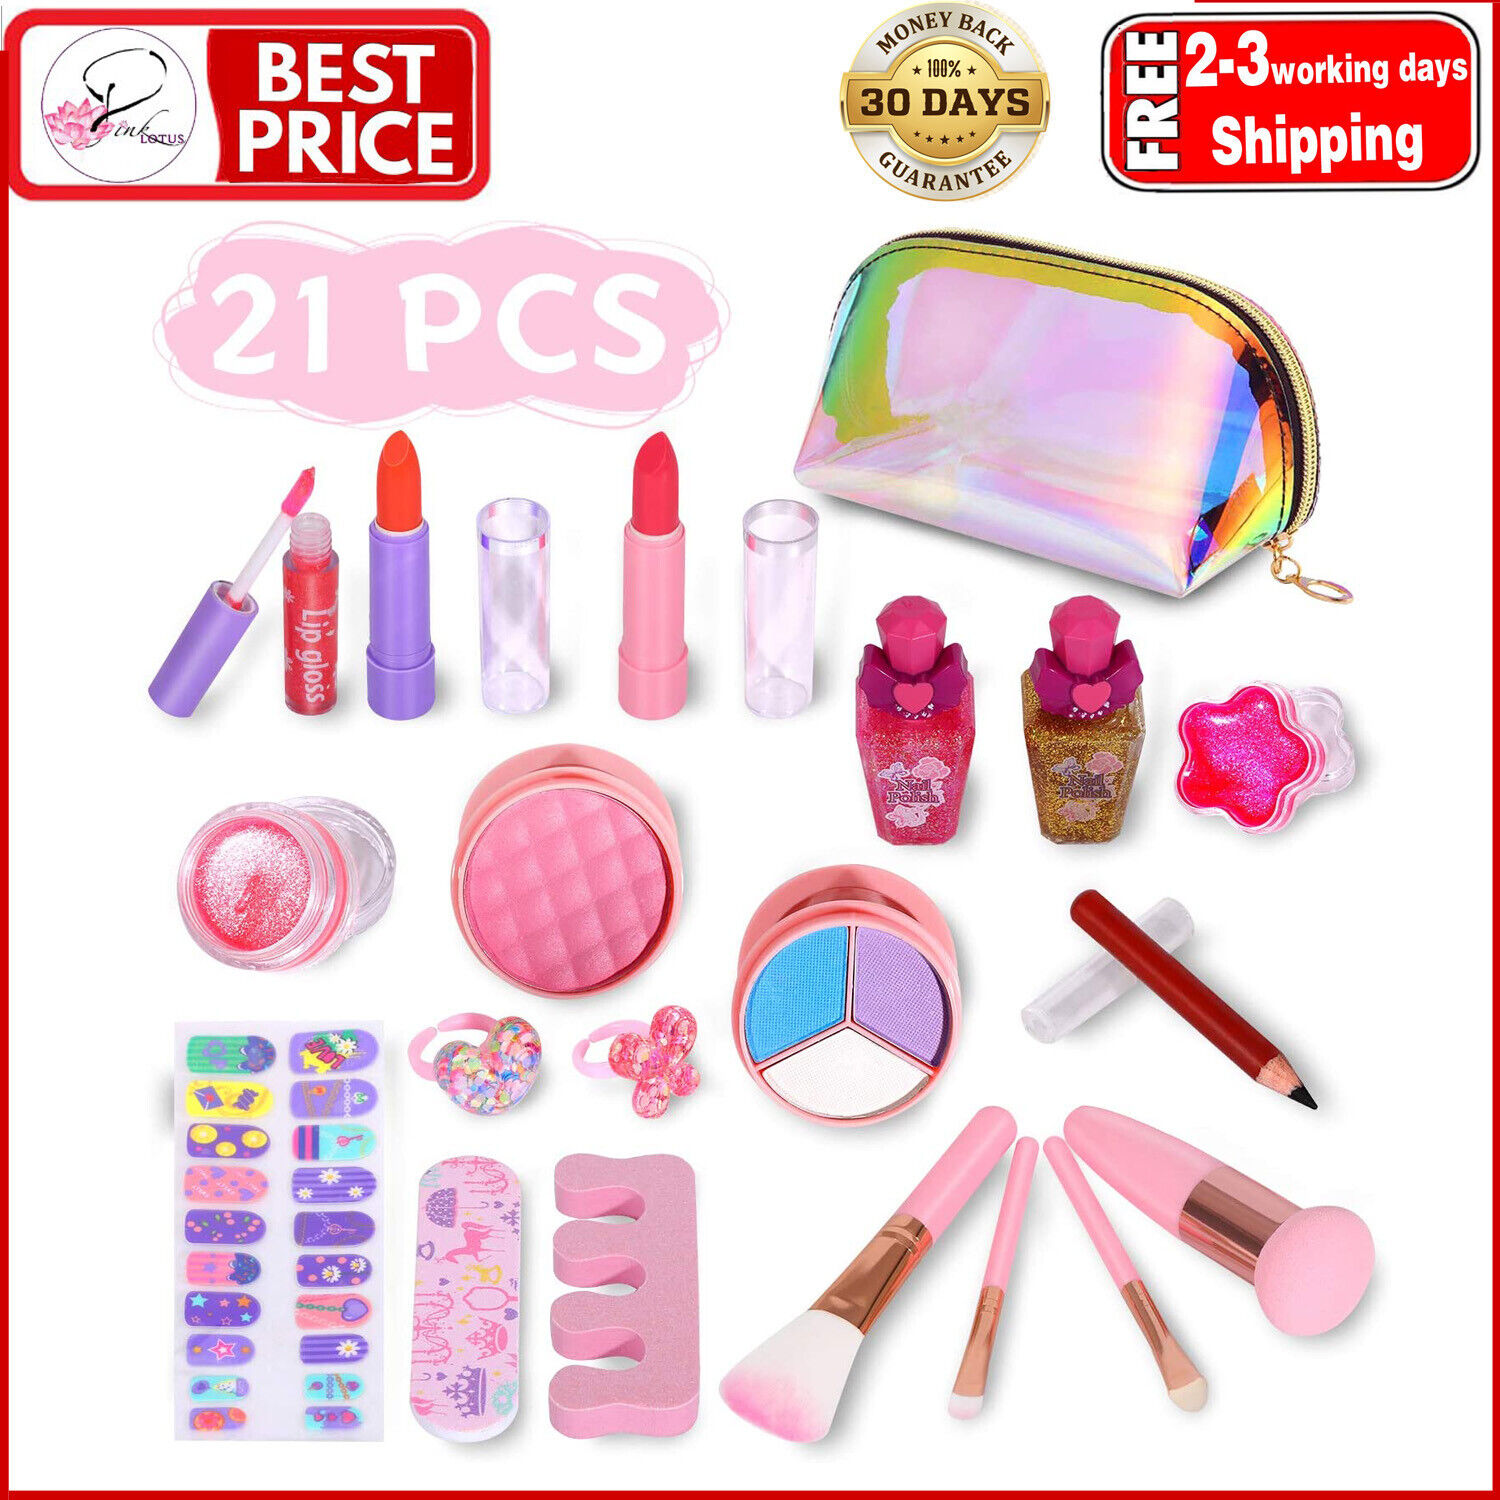 Kids Cosmetics Make Up Set With Cute Cosmetic Bag Washable Play Makeup For Litt Ebay